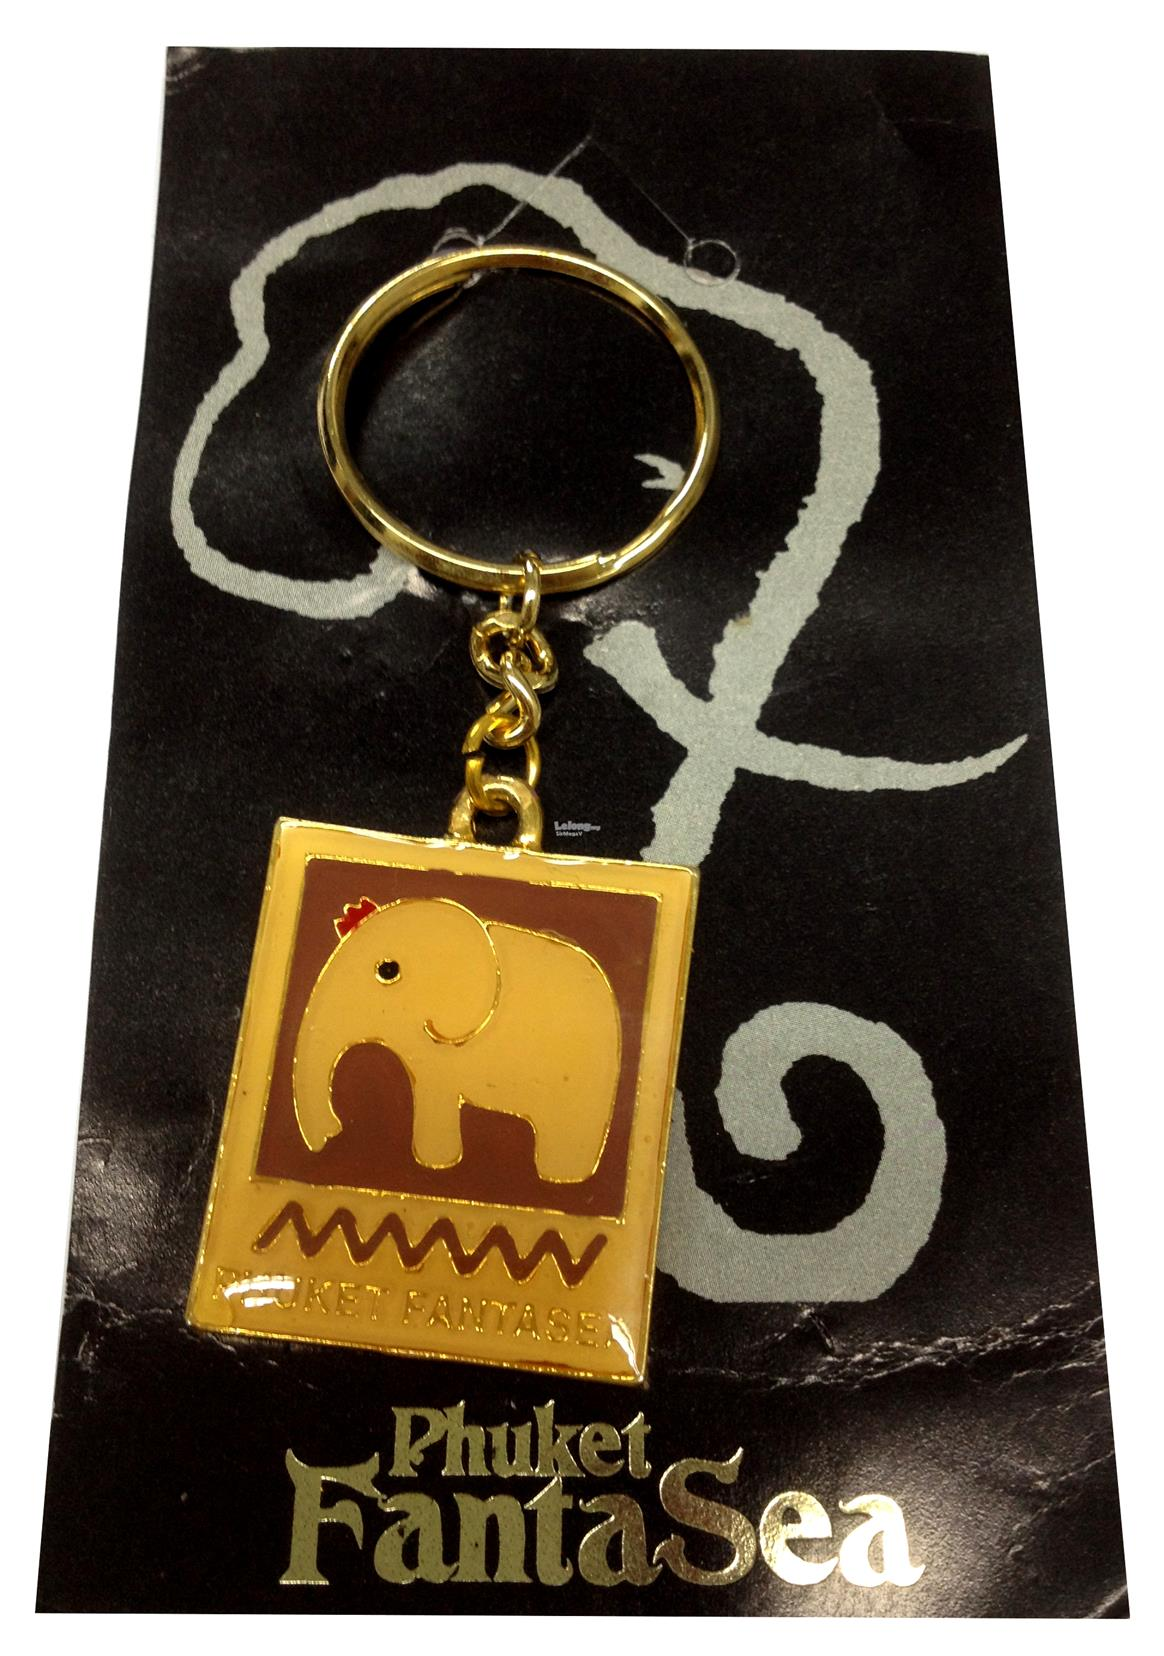 Pre-Owned - Key Chain - Phuket FantaSea - From Thailand